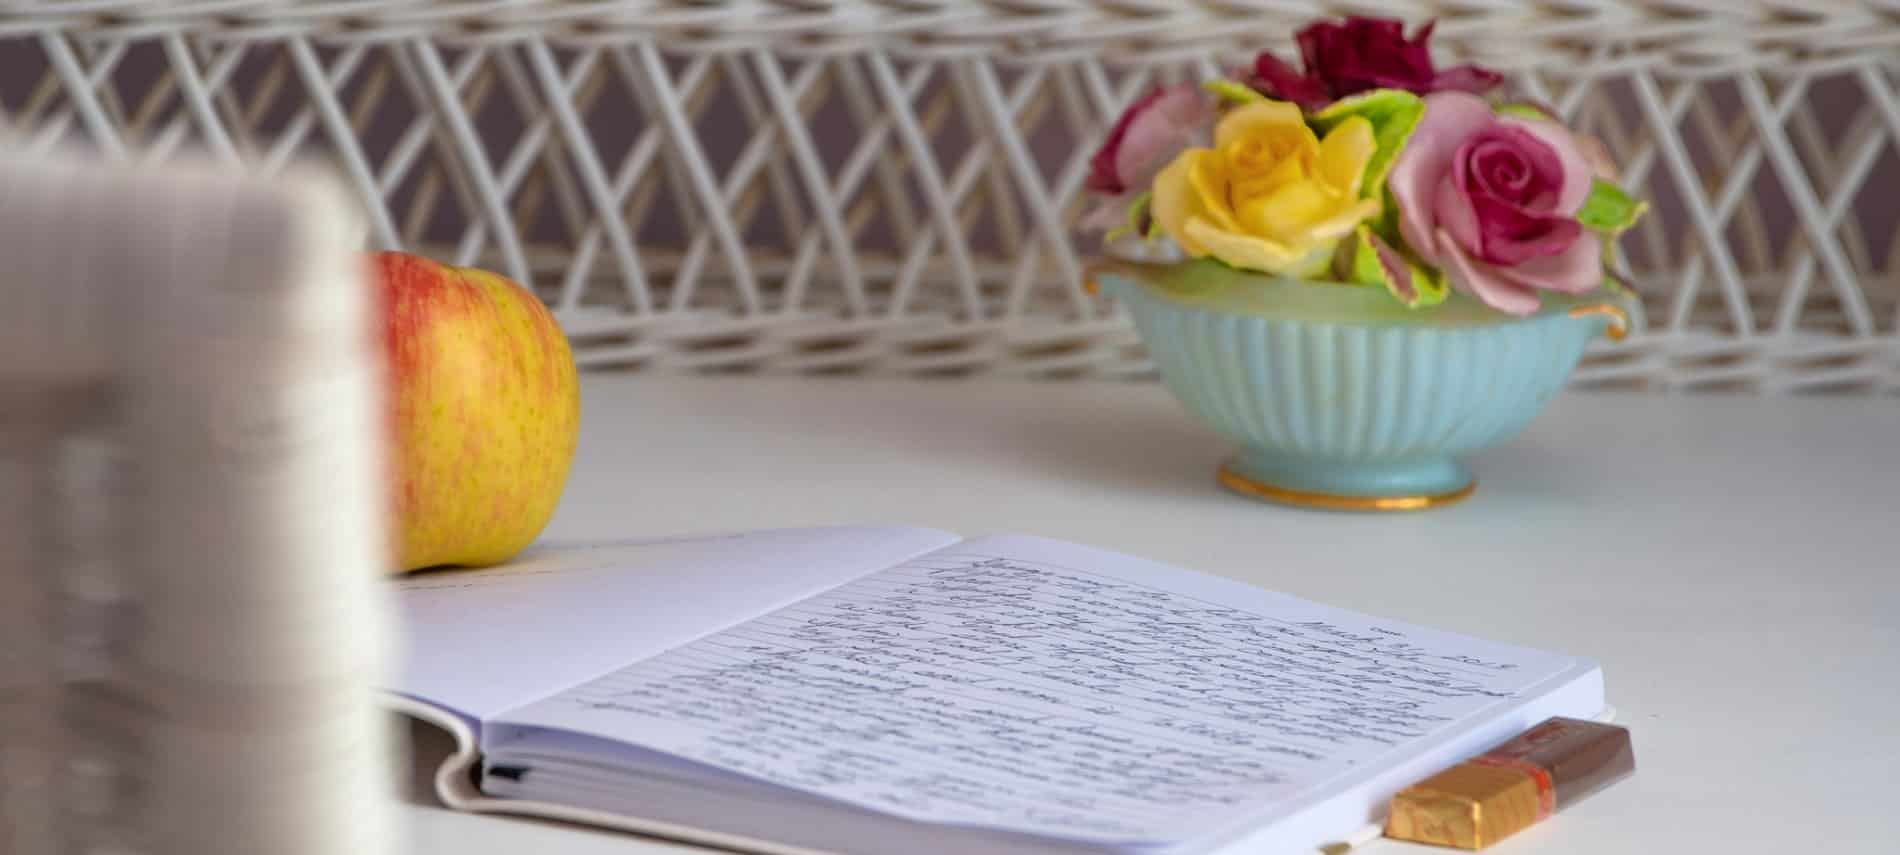 Open journal on a table with a bowl of roses and a piece of chocolate.